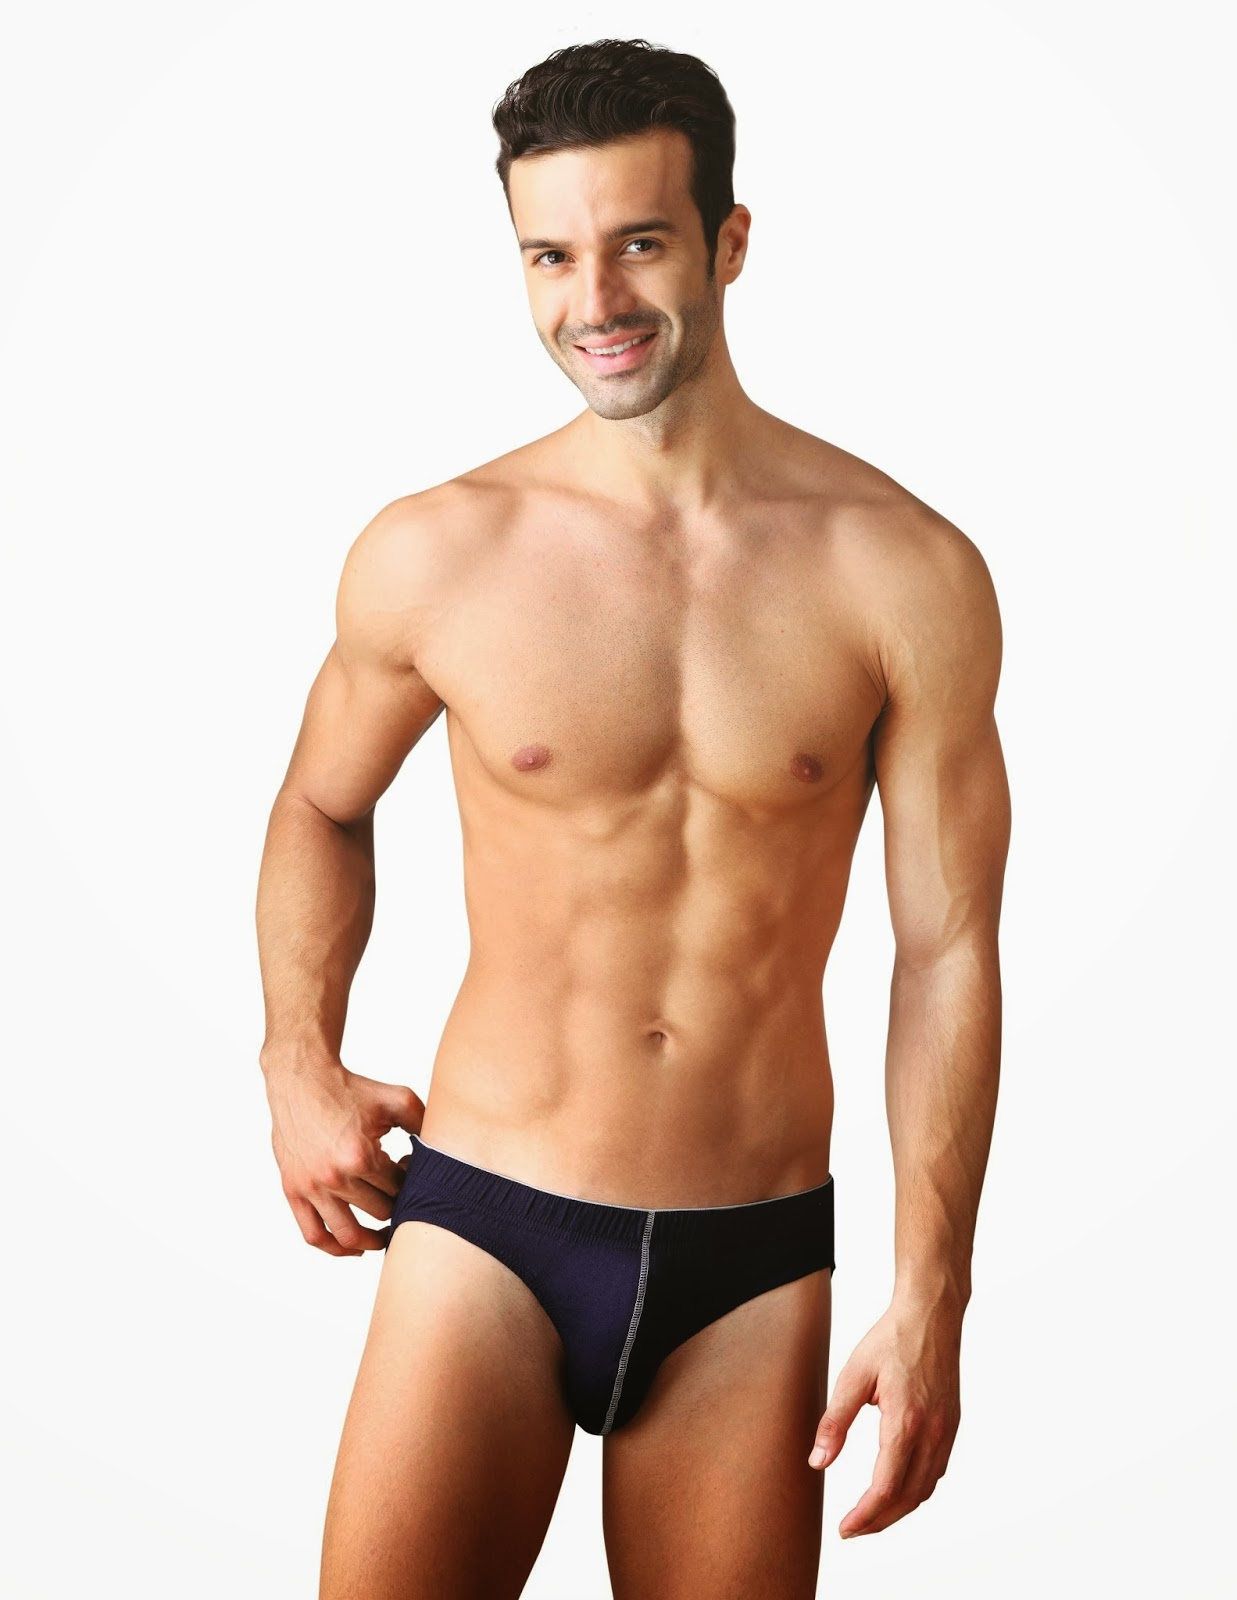 Gay under wear sites